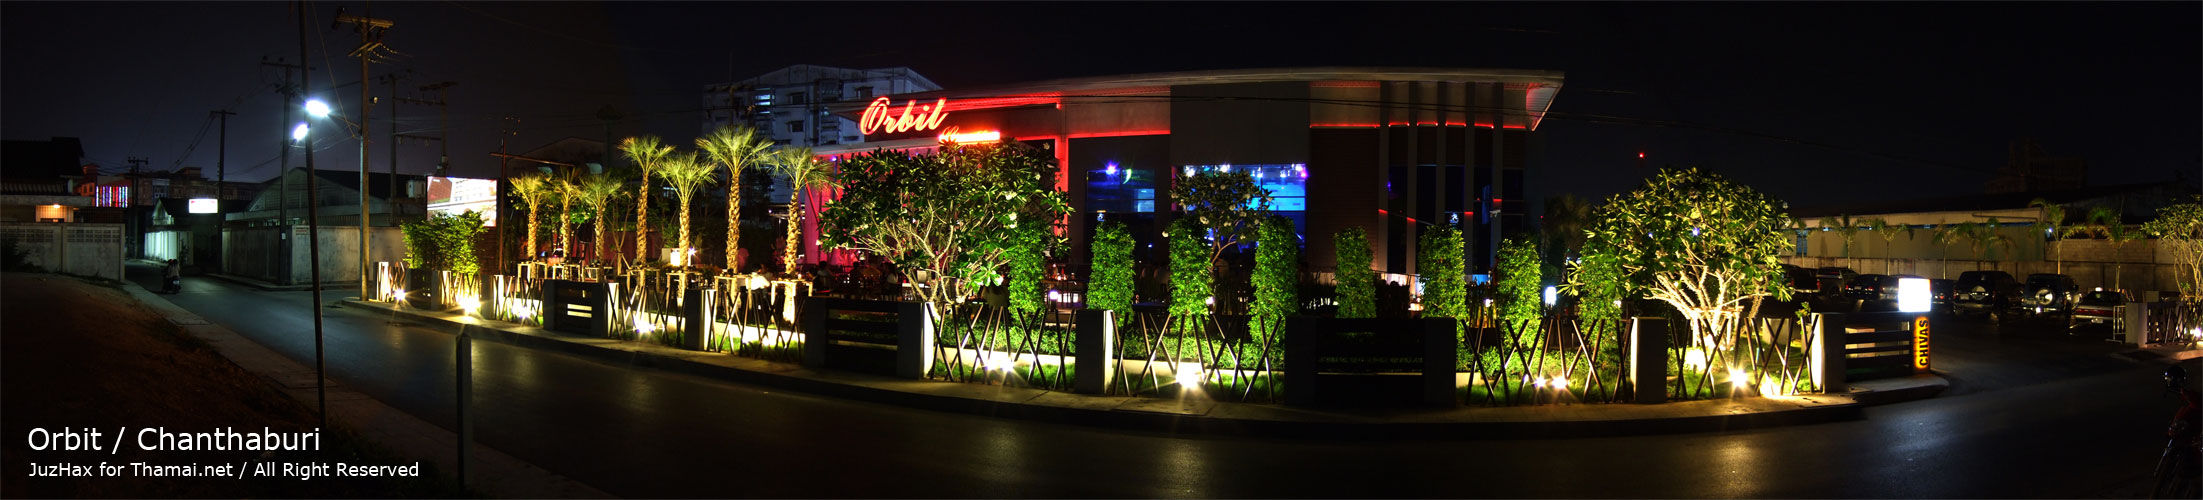 Orbit Pub